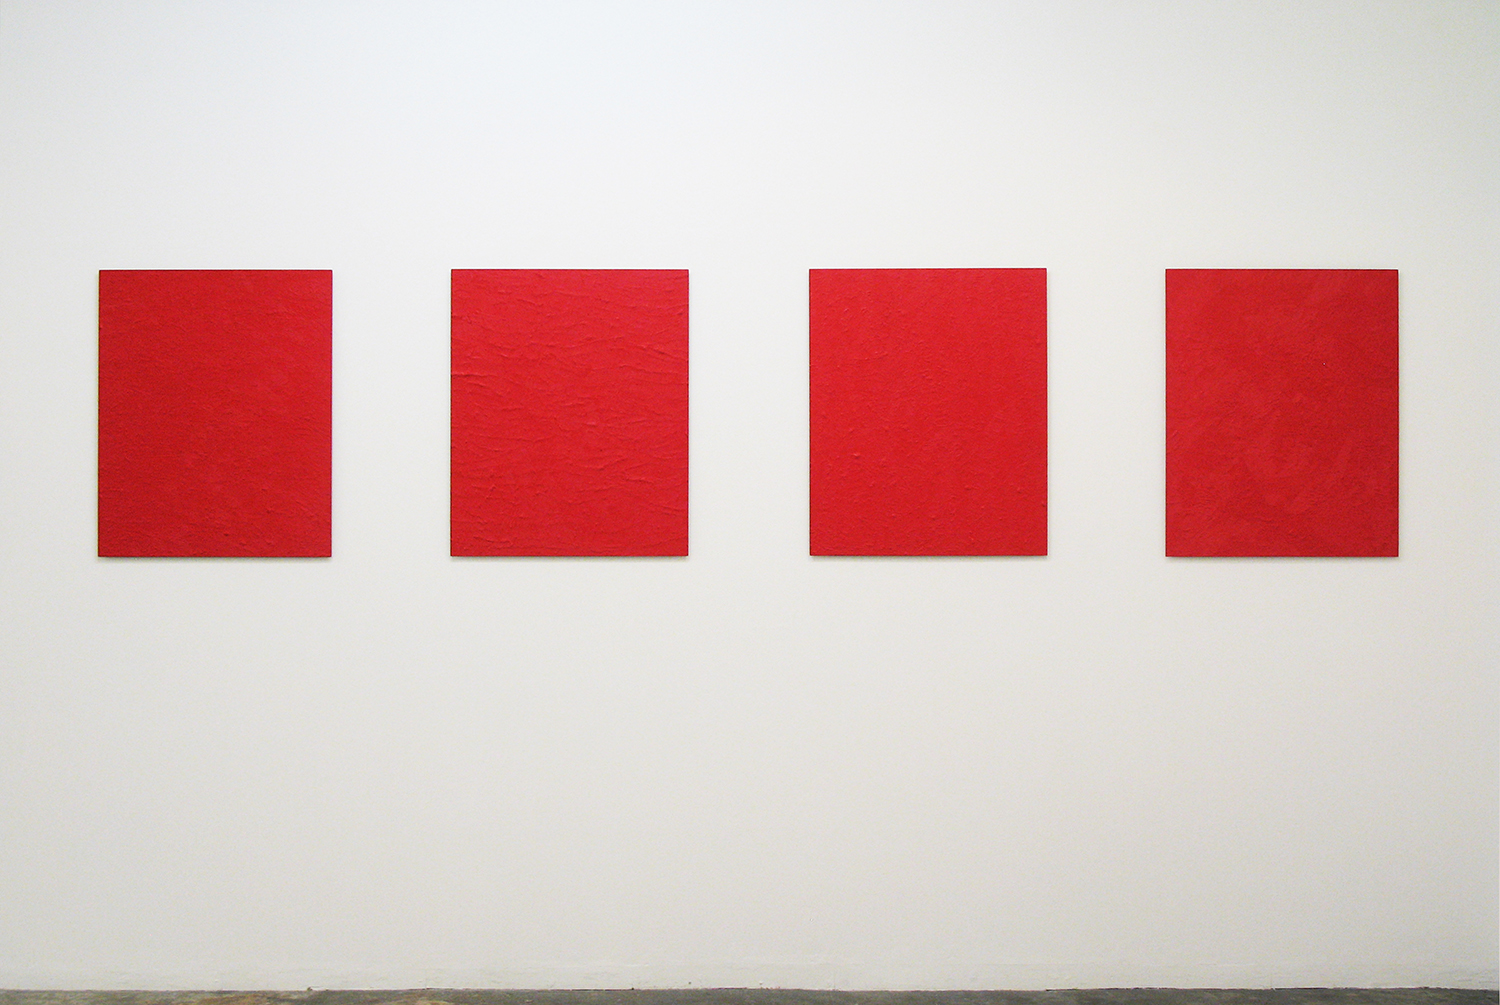 Installation View: Untitled-Red series| Oil on aluminum|727 x 606 mm|2012 each